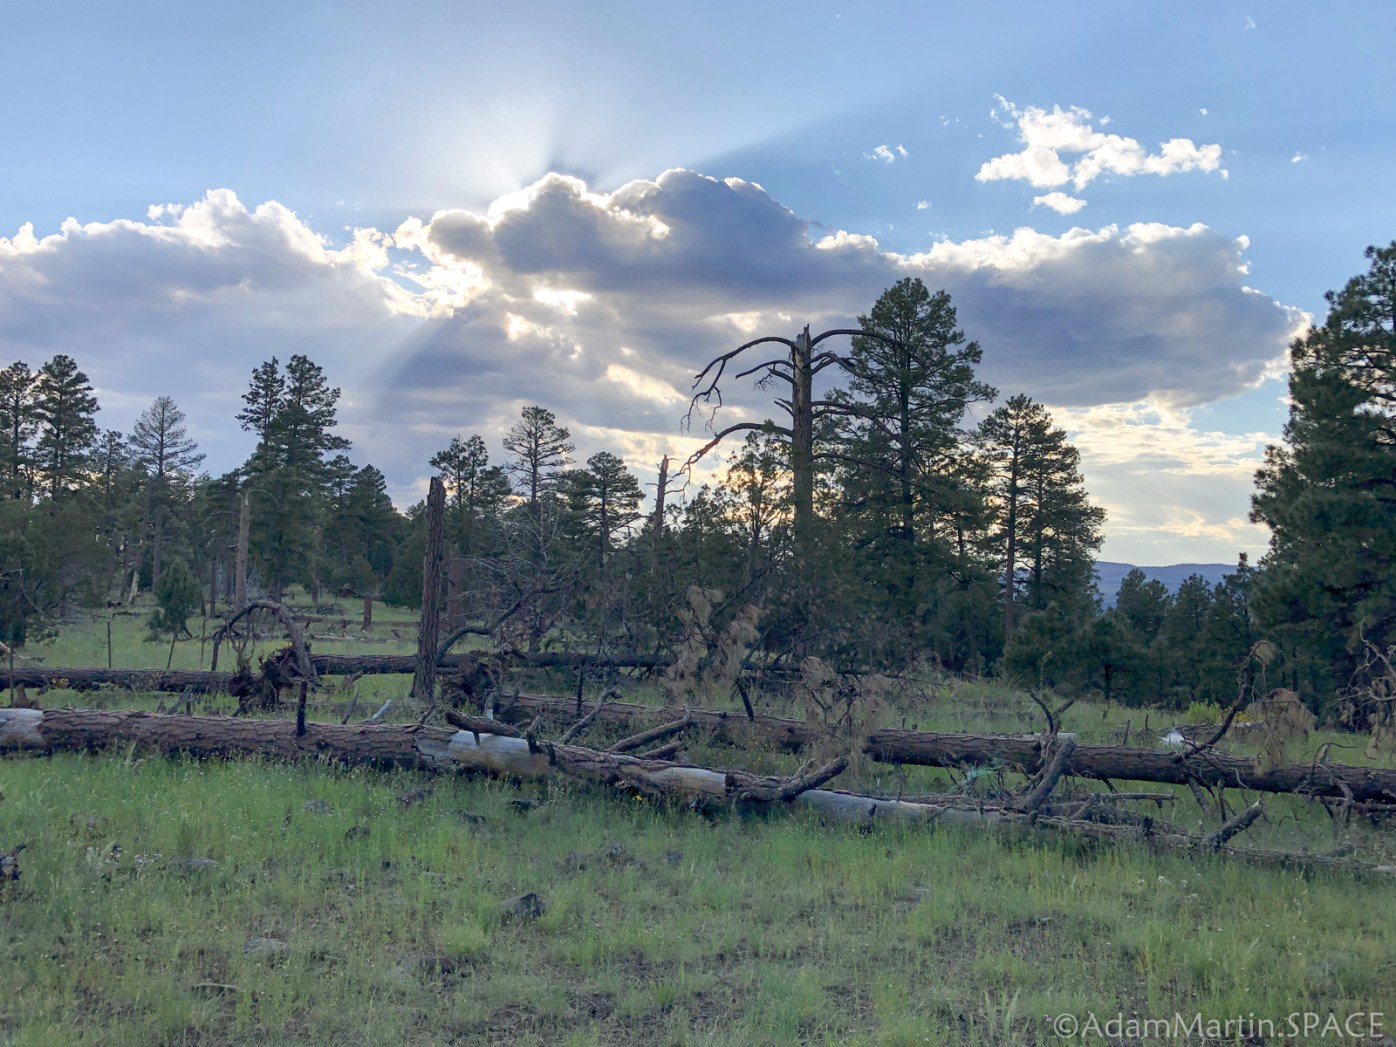 Late afternoon near the top of Loco Mountain looking for elk